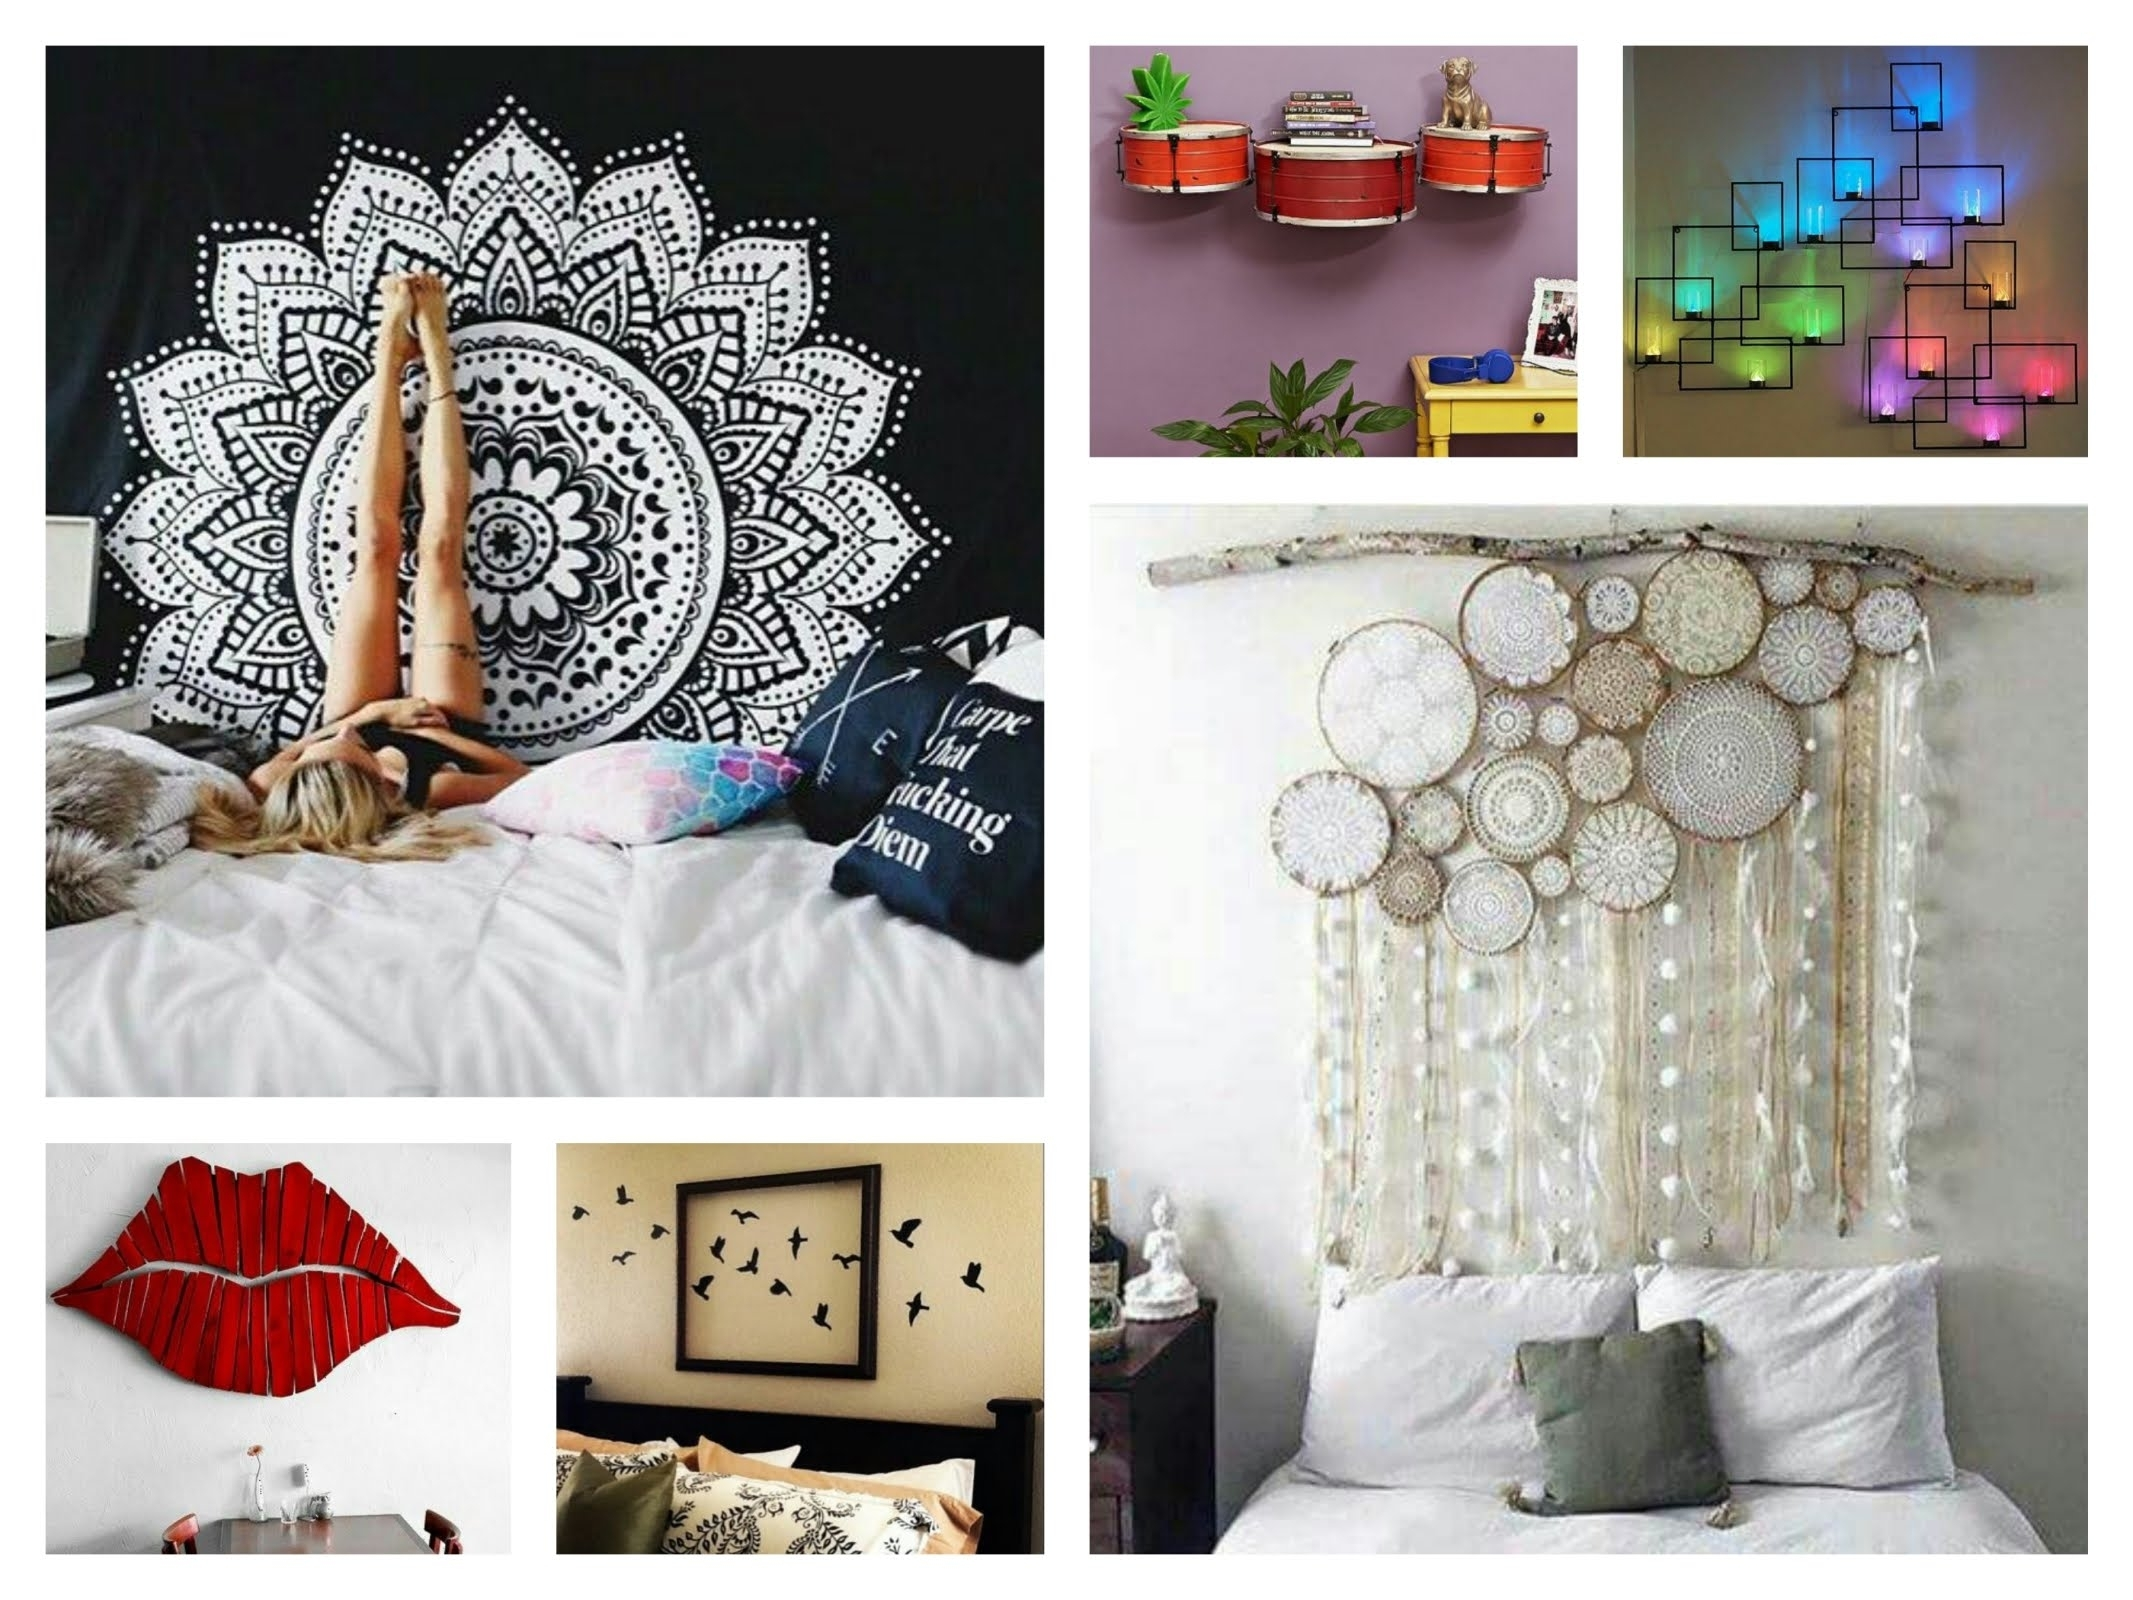 Creative Wall Decor Ideas – Diy Room Decorations – Youtube Within 2018 Wall Art Decors (Gallery 5 of 15)